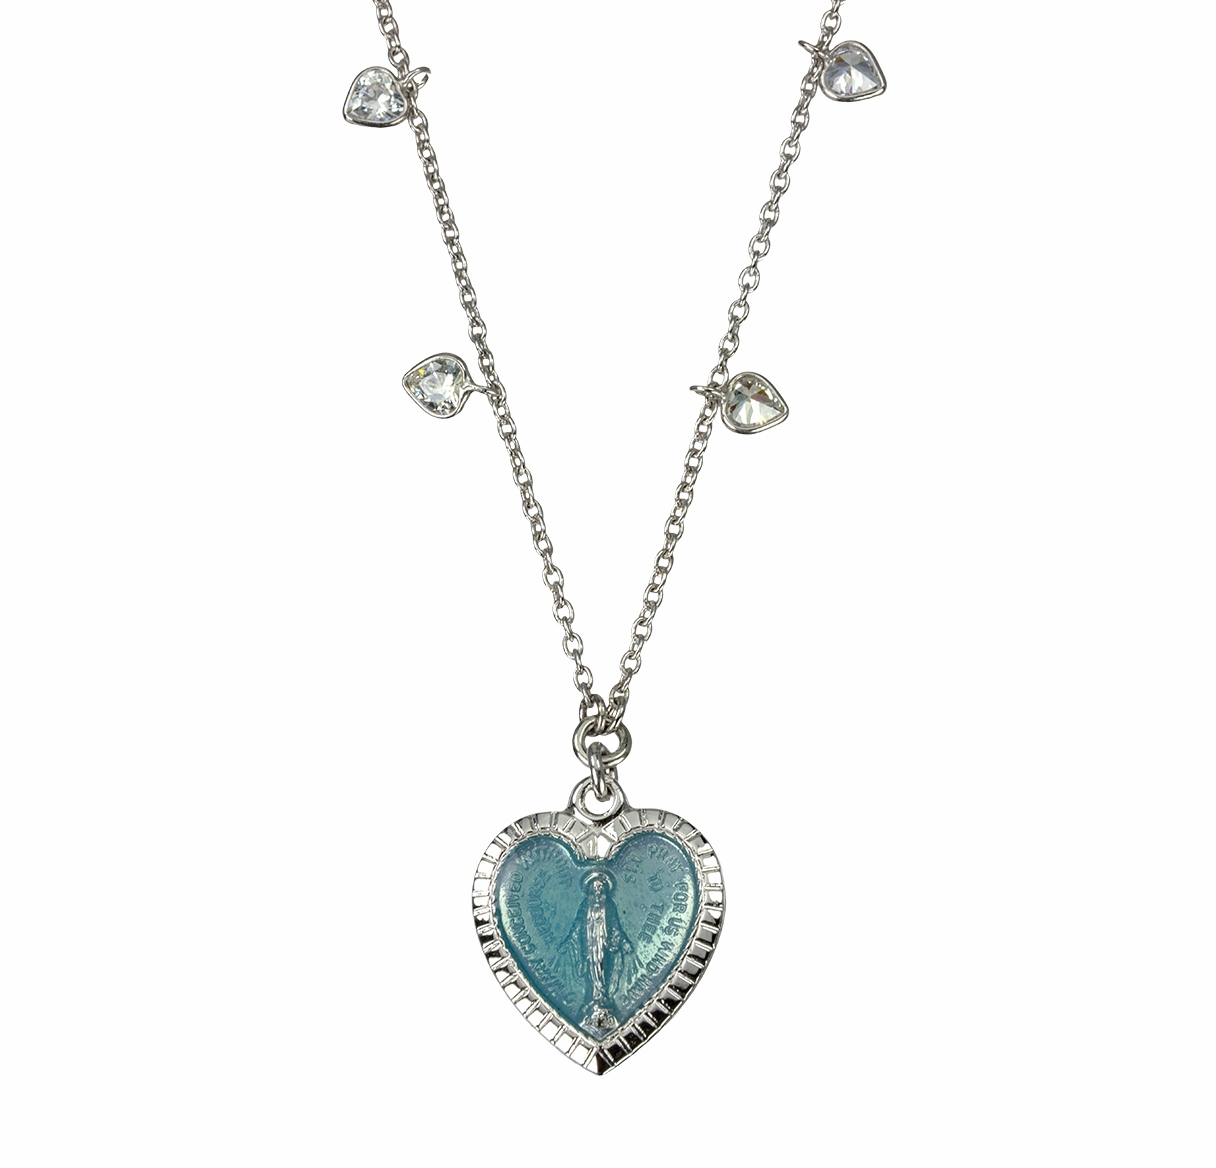 HMH Religious Enameled Heart Miraculous Sterling Necklace